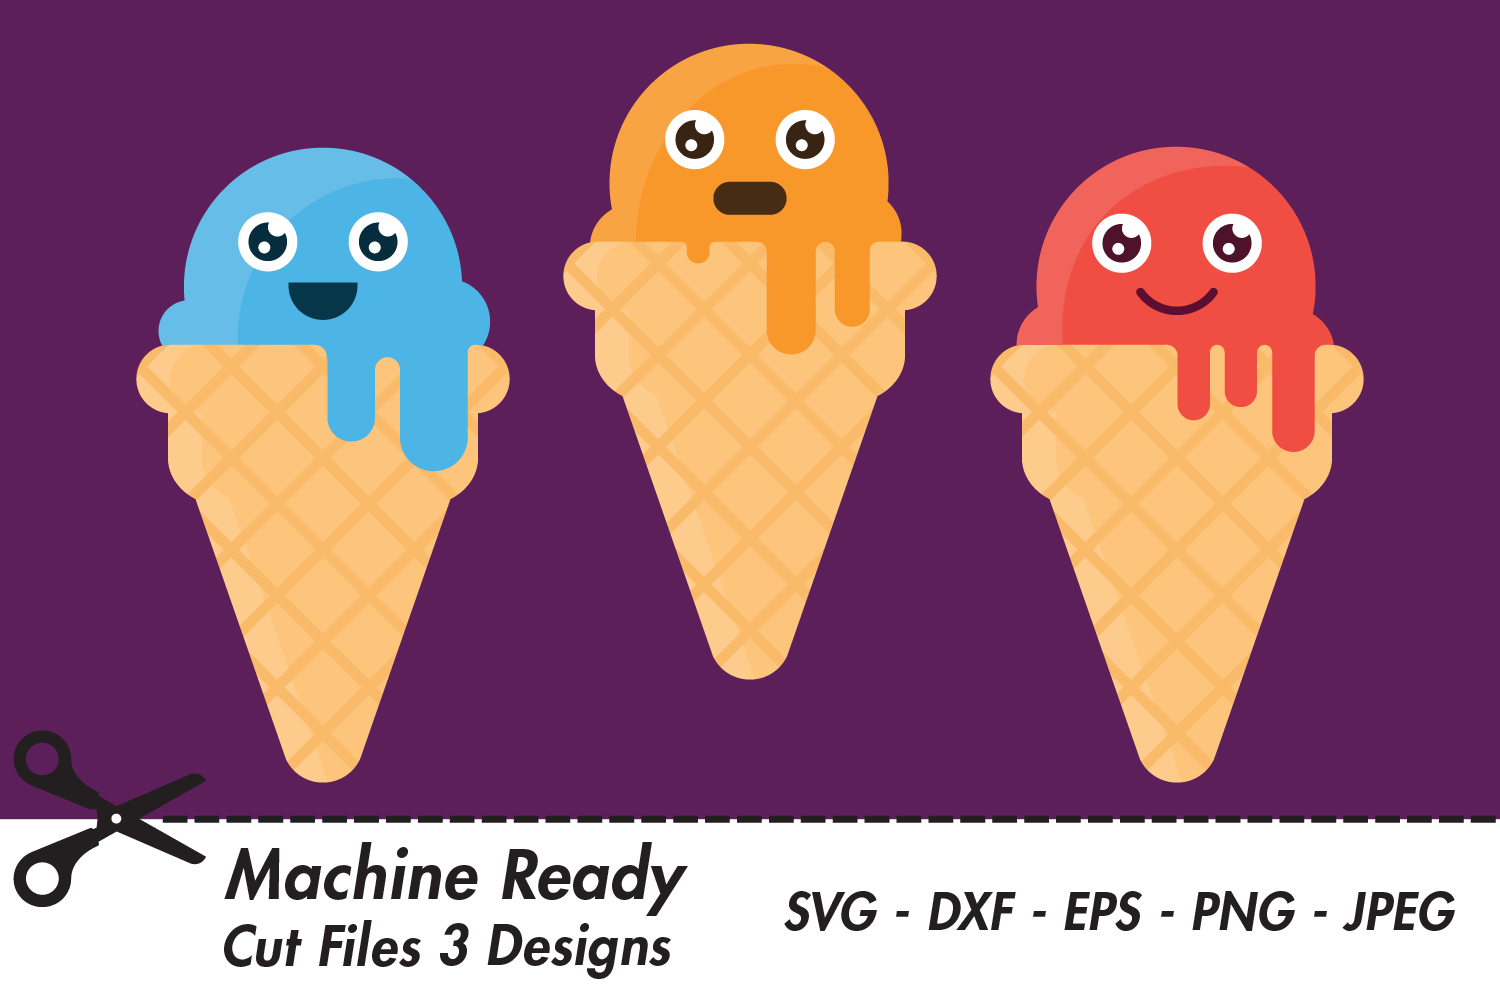 Download Free Cute Boy Ice Cream Cones Graphic By Captaincreative Creative for Cricut Explore, Silhouette and other cutting machines.